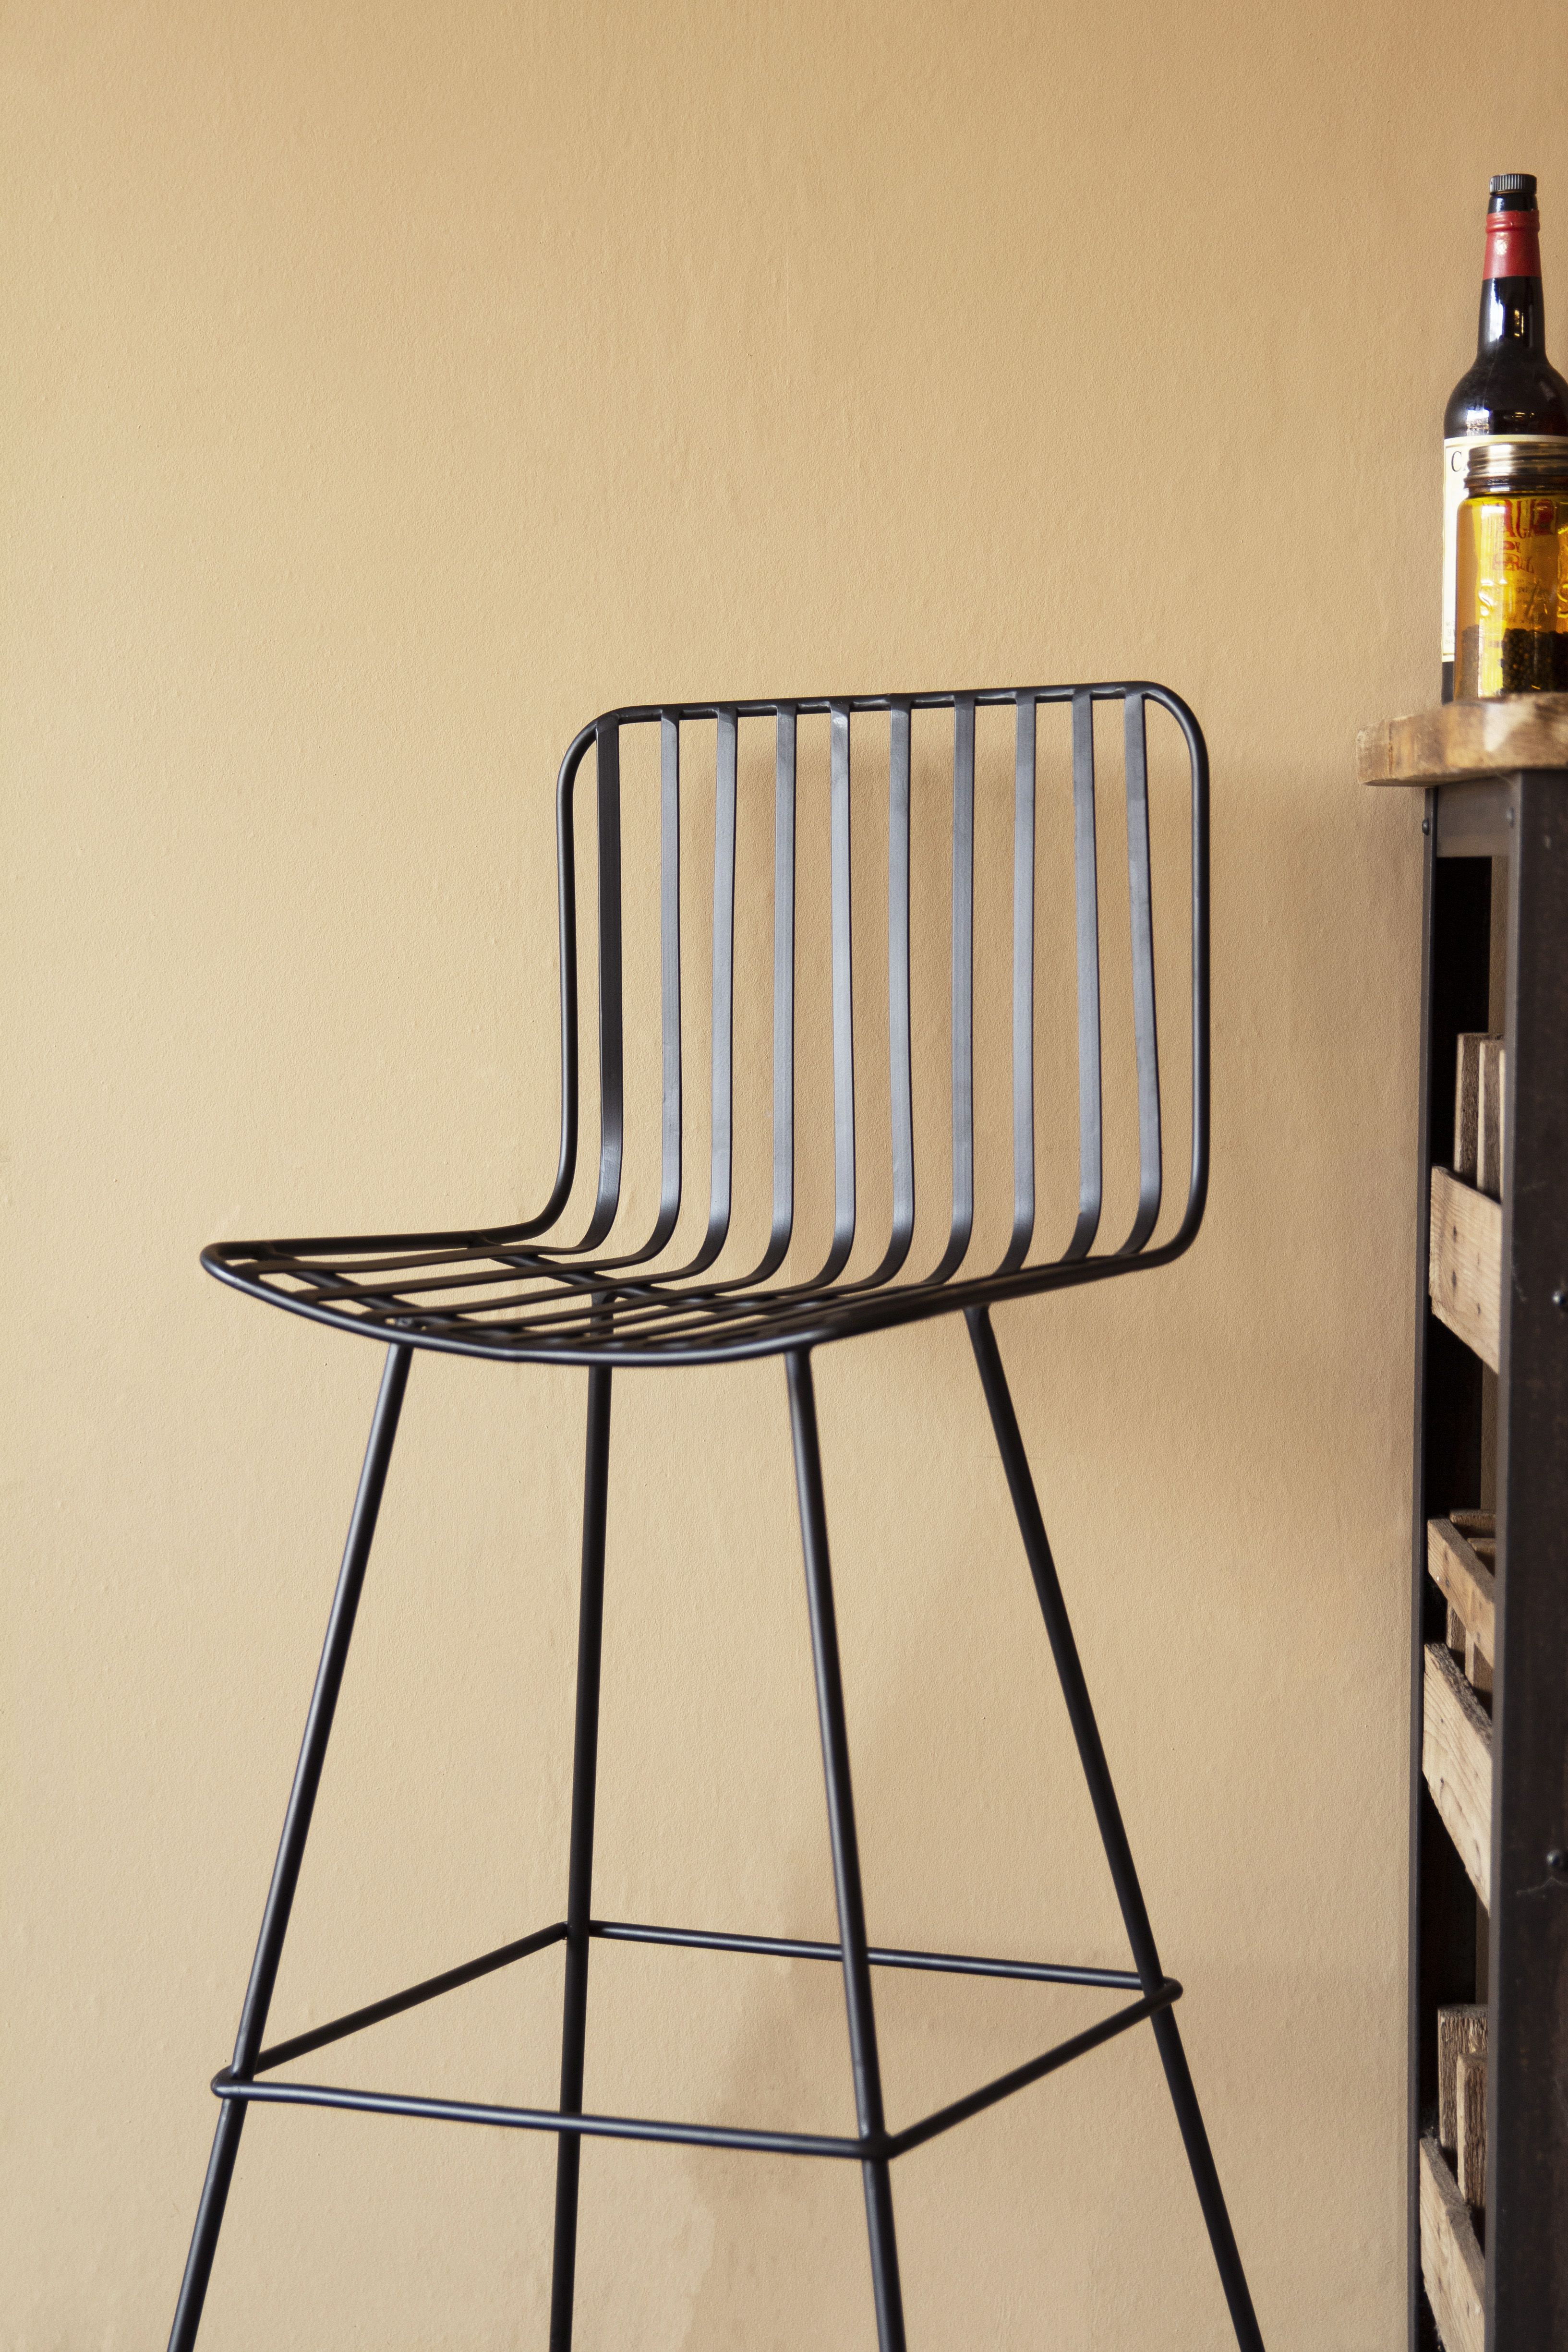 Miraculous Nero Black Metal Bar Stool In 2019 Ss19 Interior Trends Ncnpc Chair Design For Home Ncnpcorg